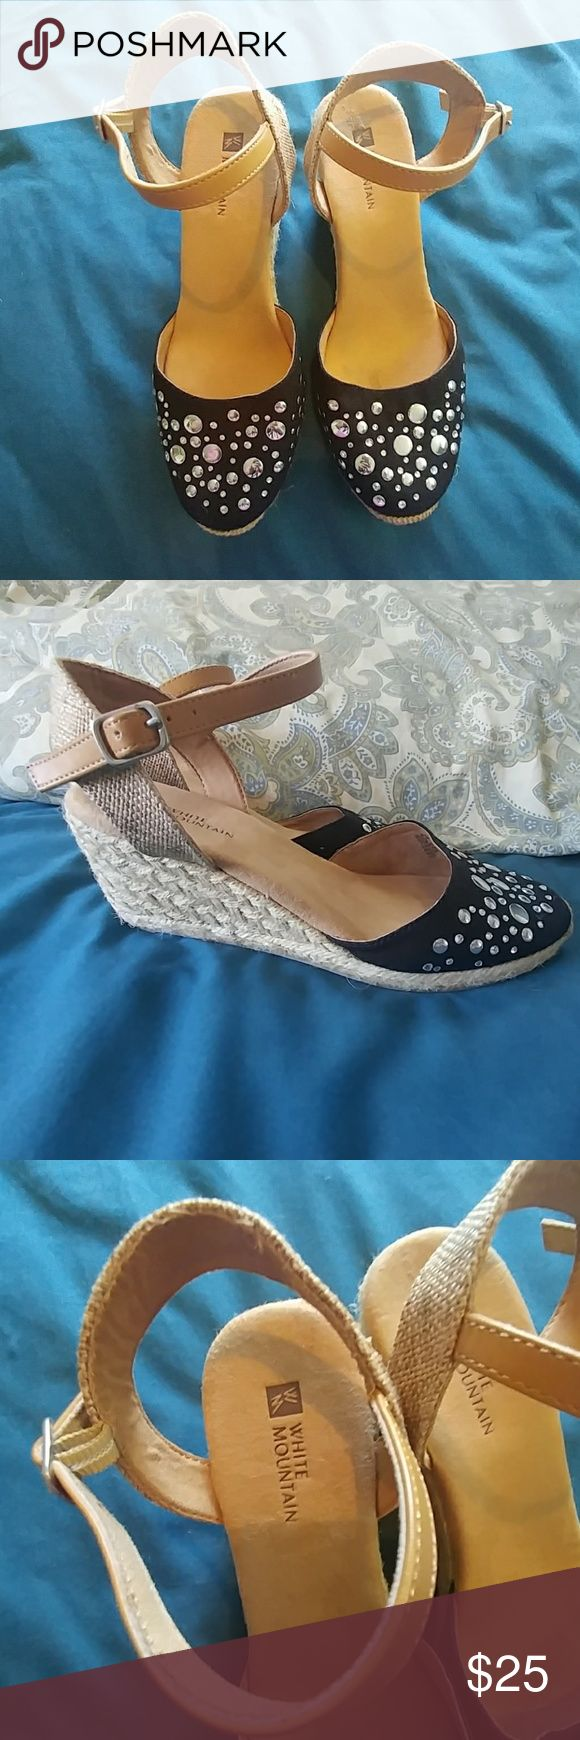 Black sandals littlewoods - White Mountain Sandals Low Wedge White Mountain Sandals Low Wedge Style Cute Black Fabric